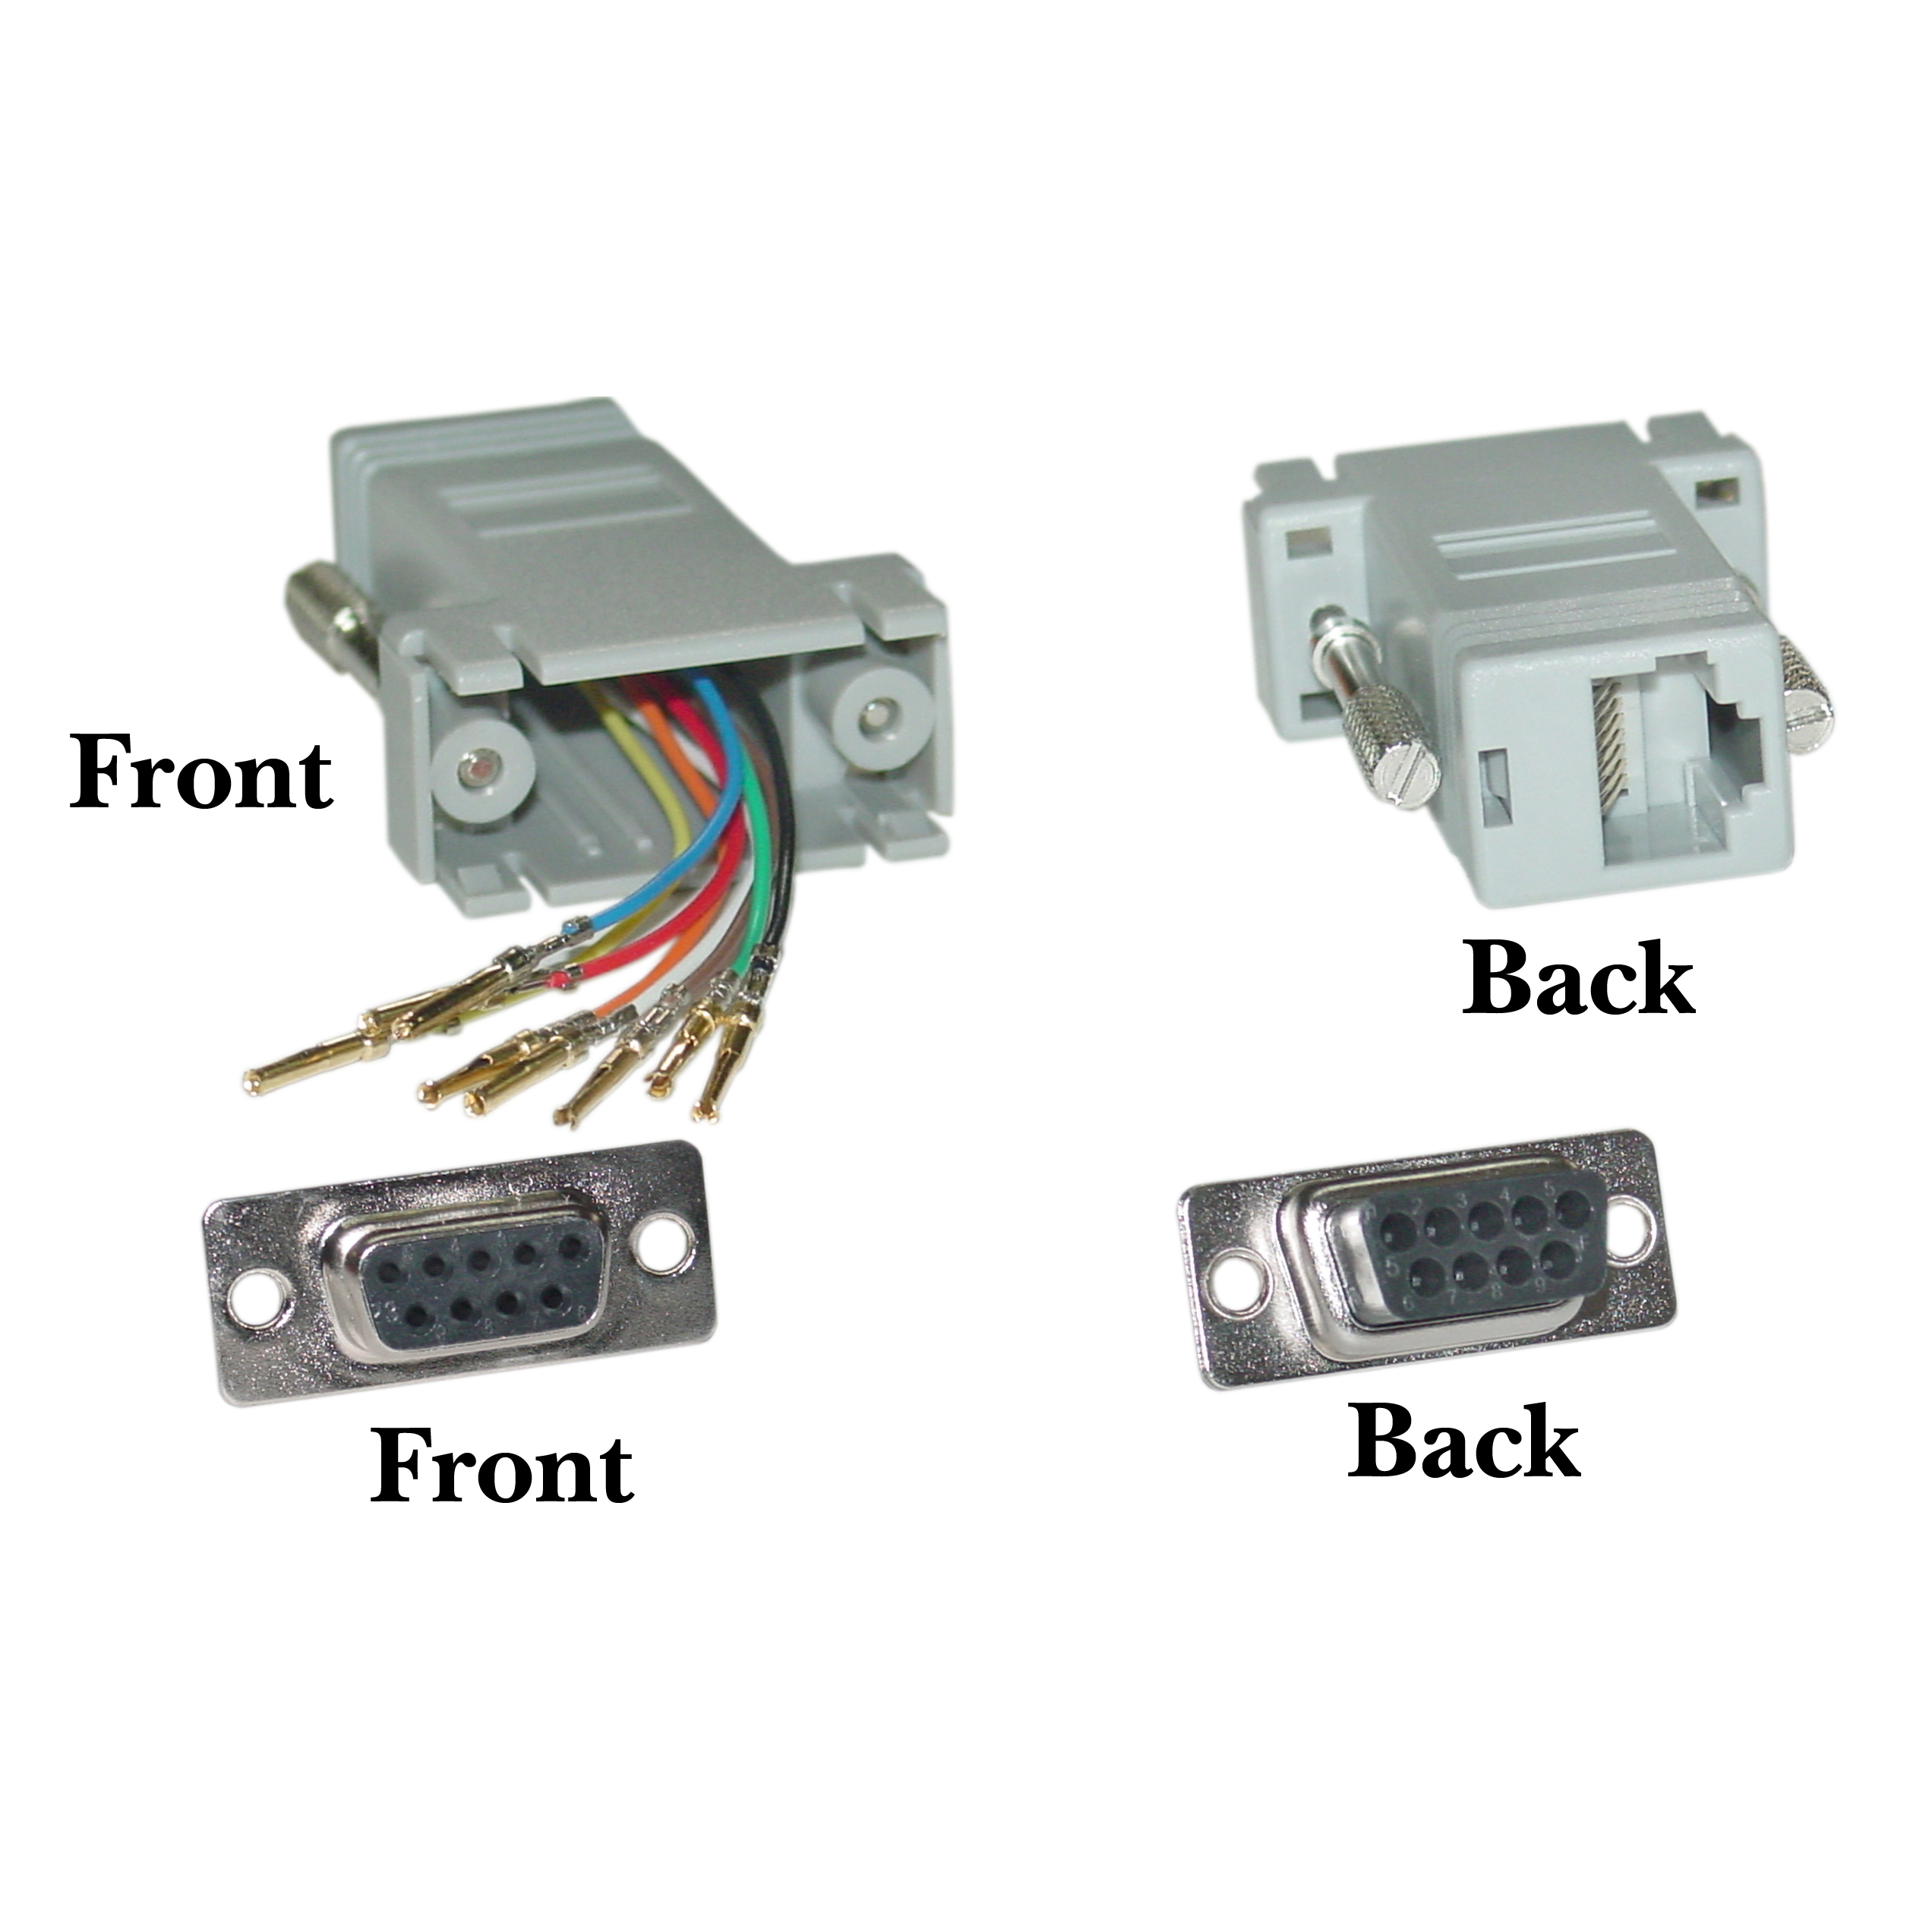 Dropship Clickhere2shop Rj45 Wiring Diagram Wiki Also Furthermore Power Offex Wholesale Db9 Female Color Gray